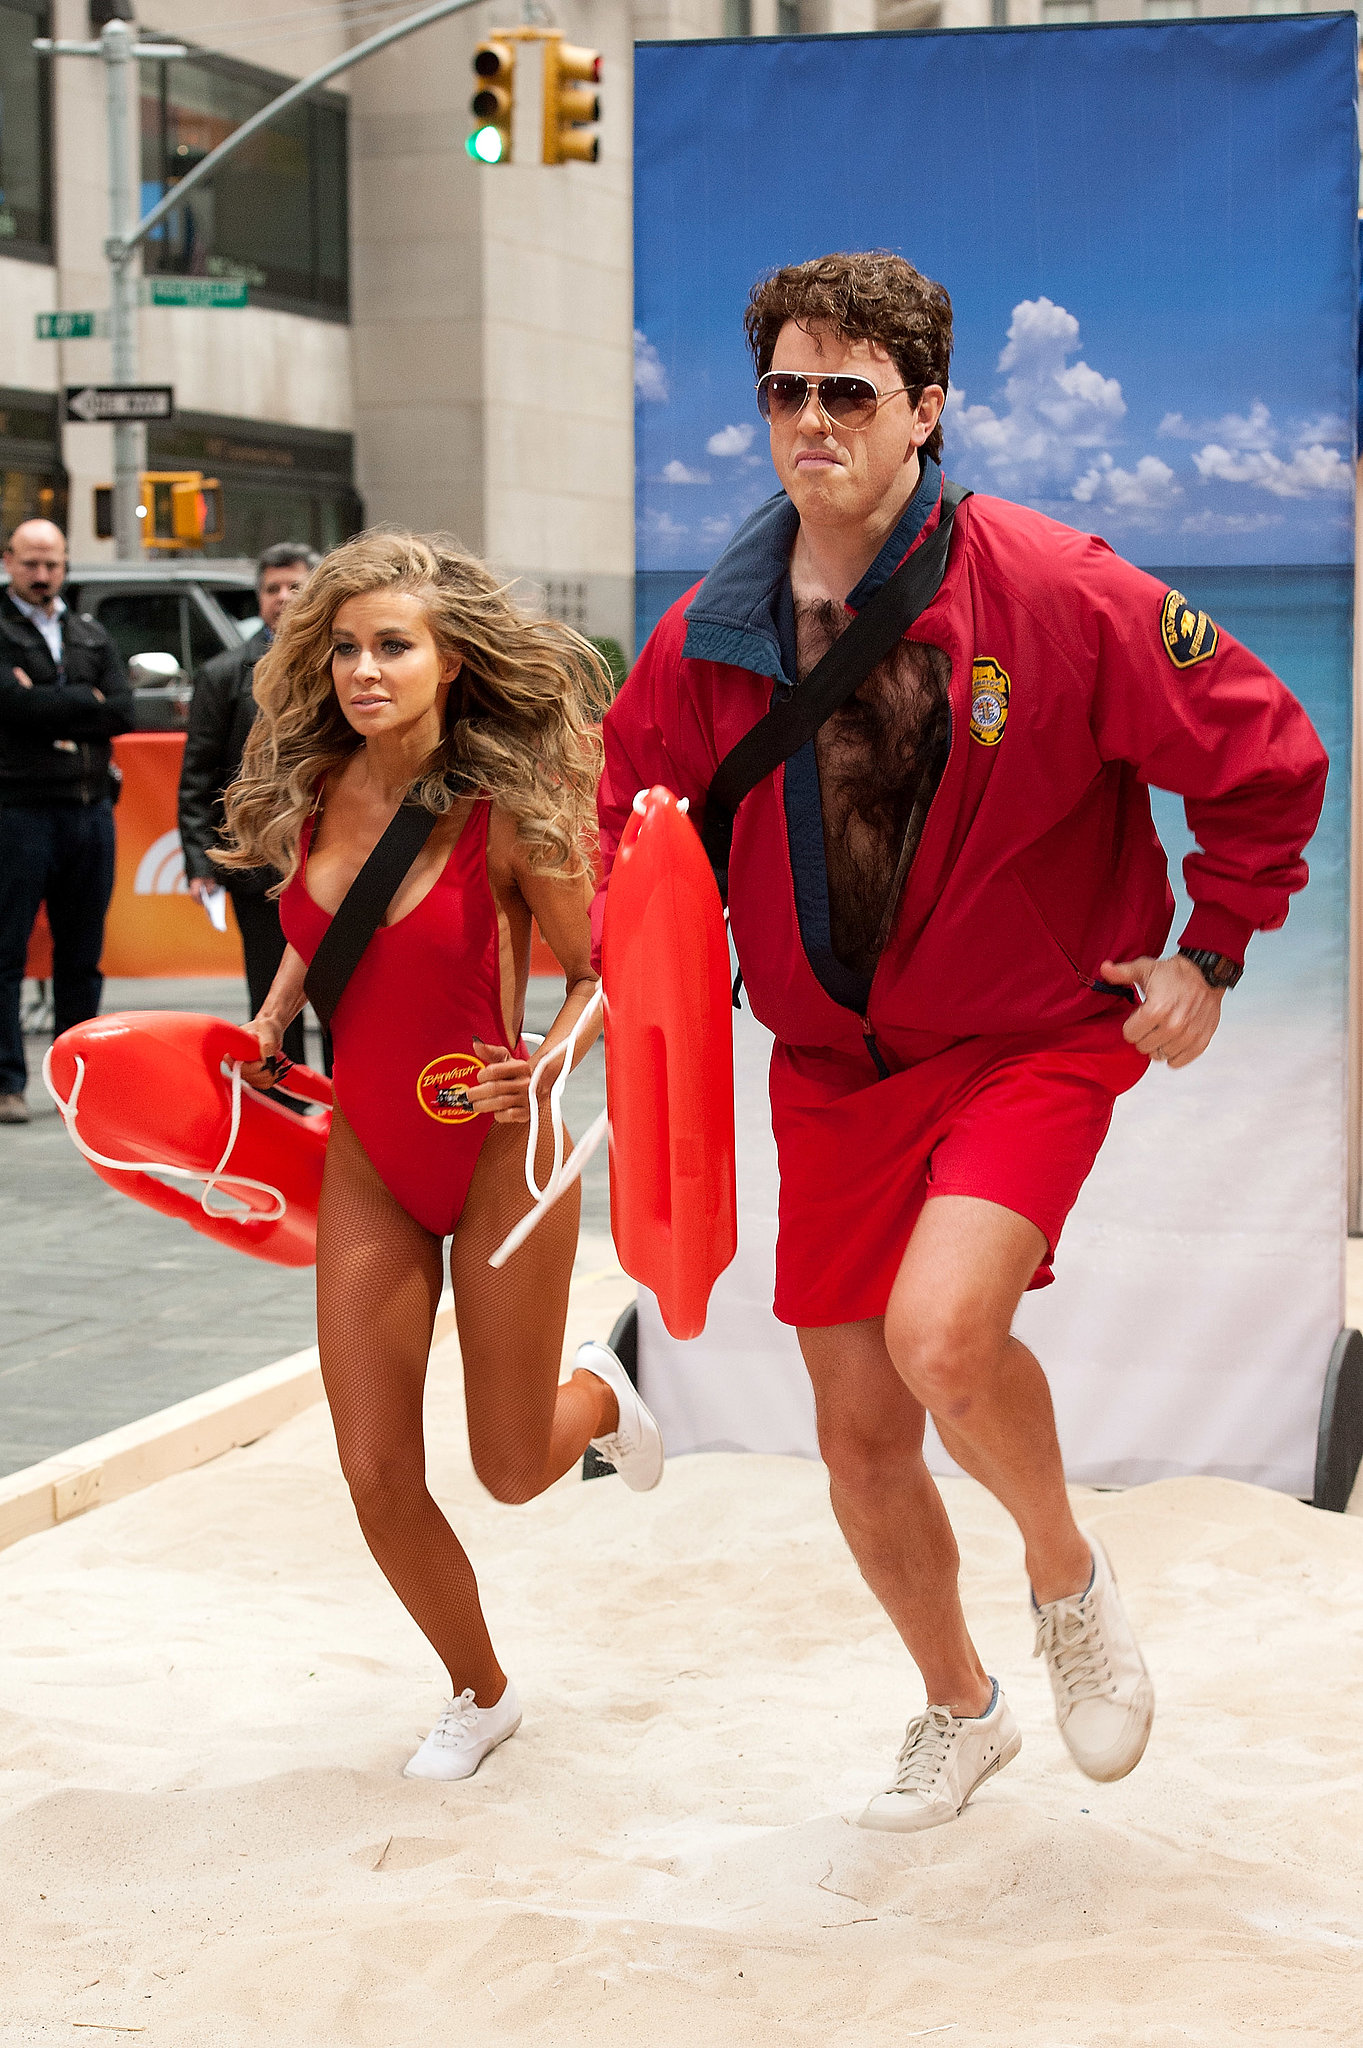 Willie Geist and Carmen Electra teamed up for Baywatch costumes.